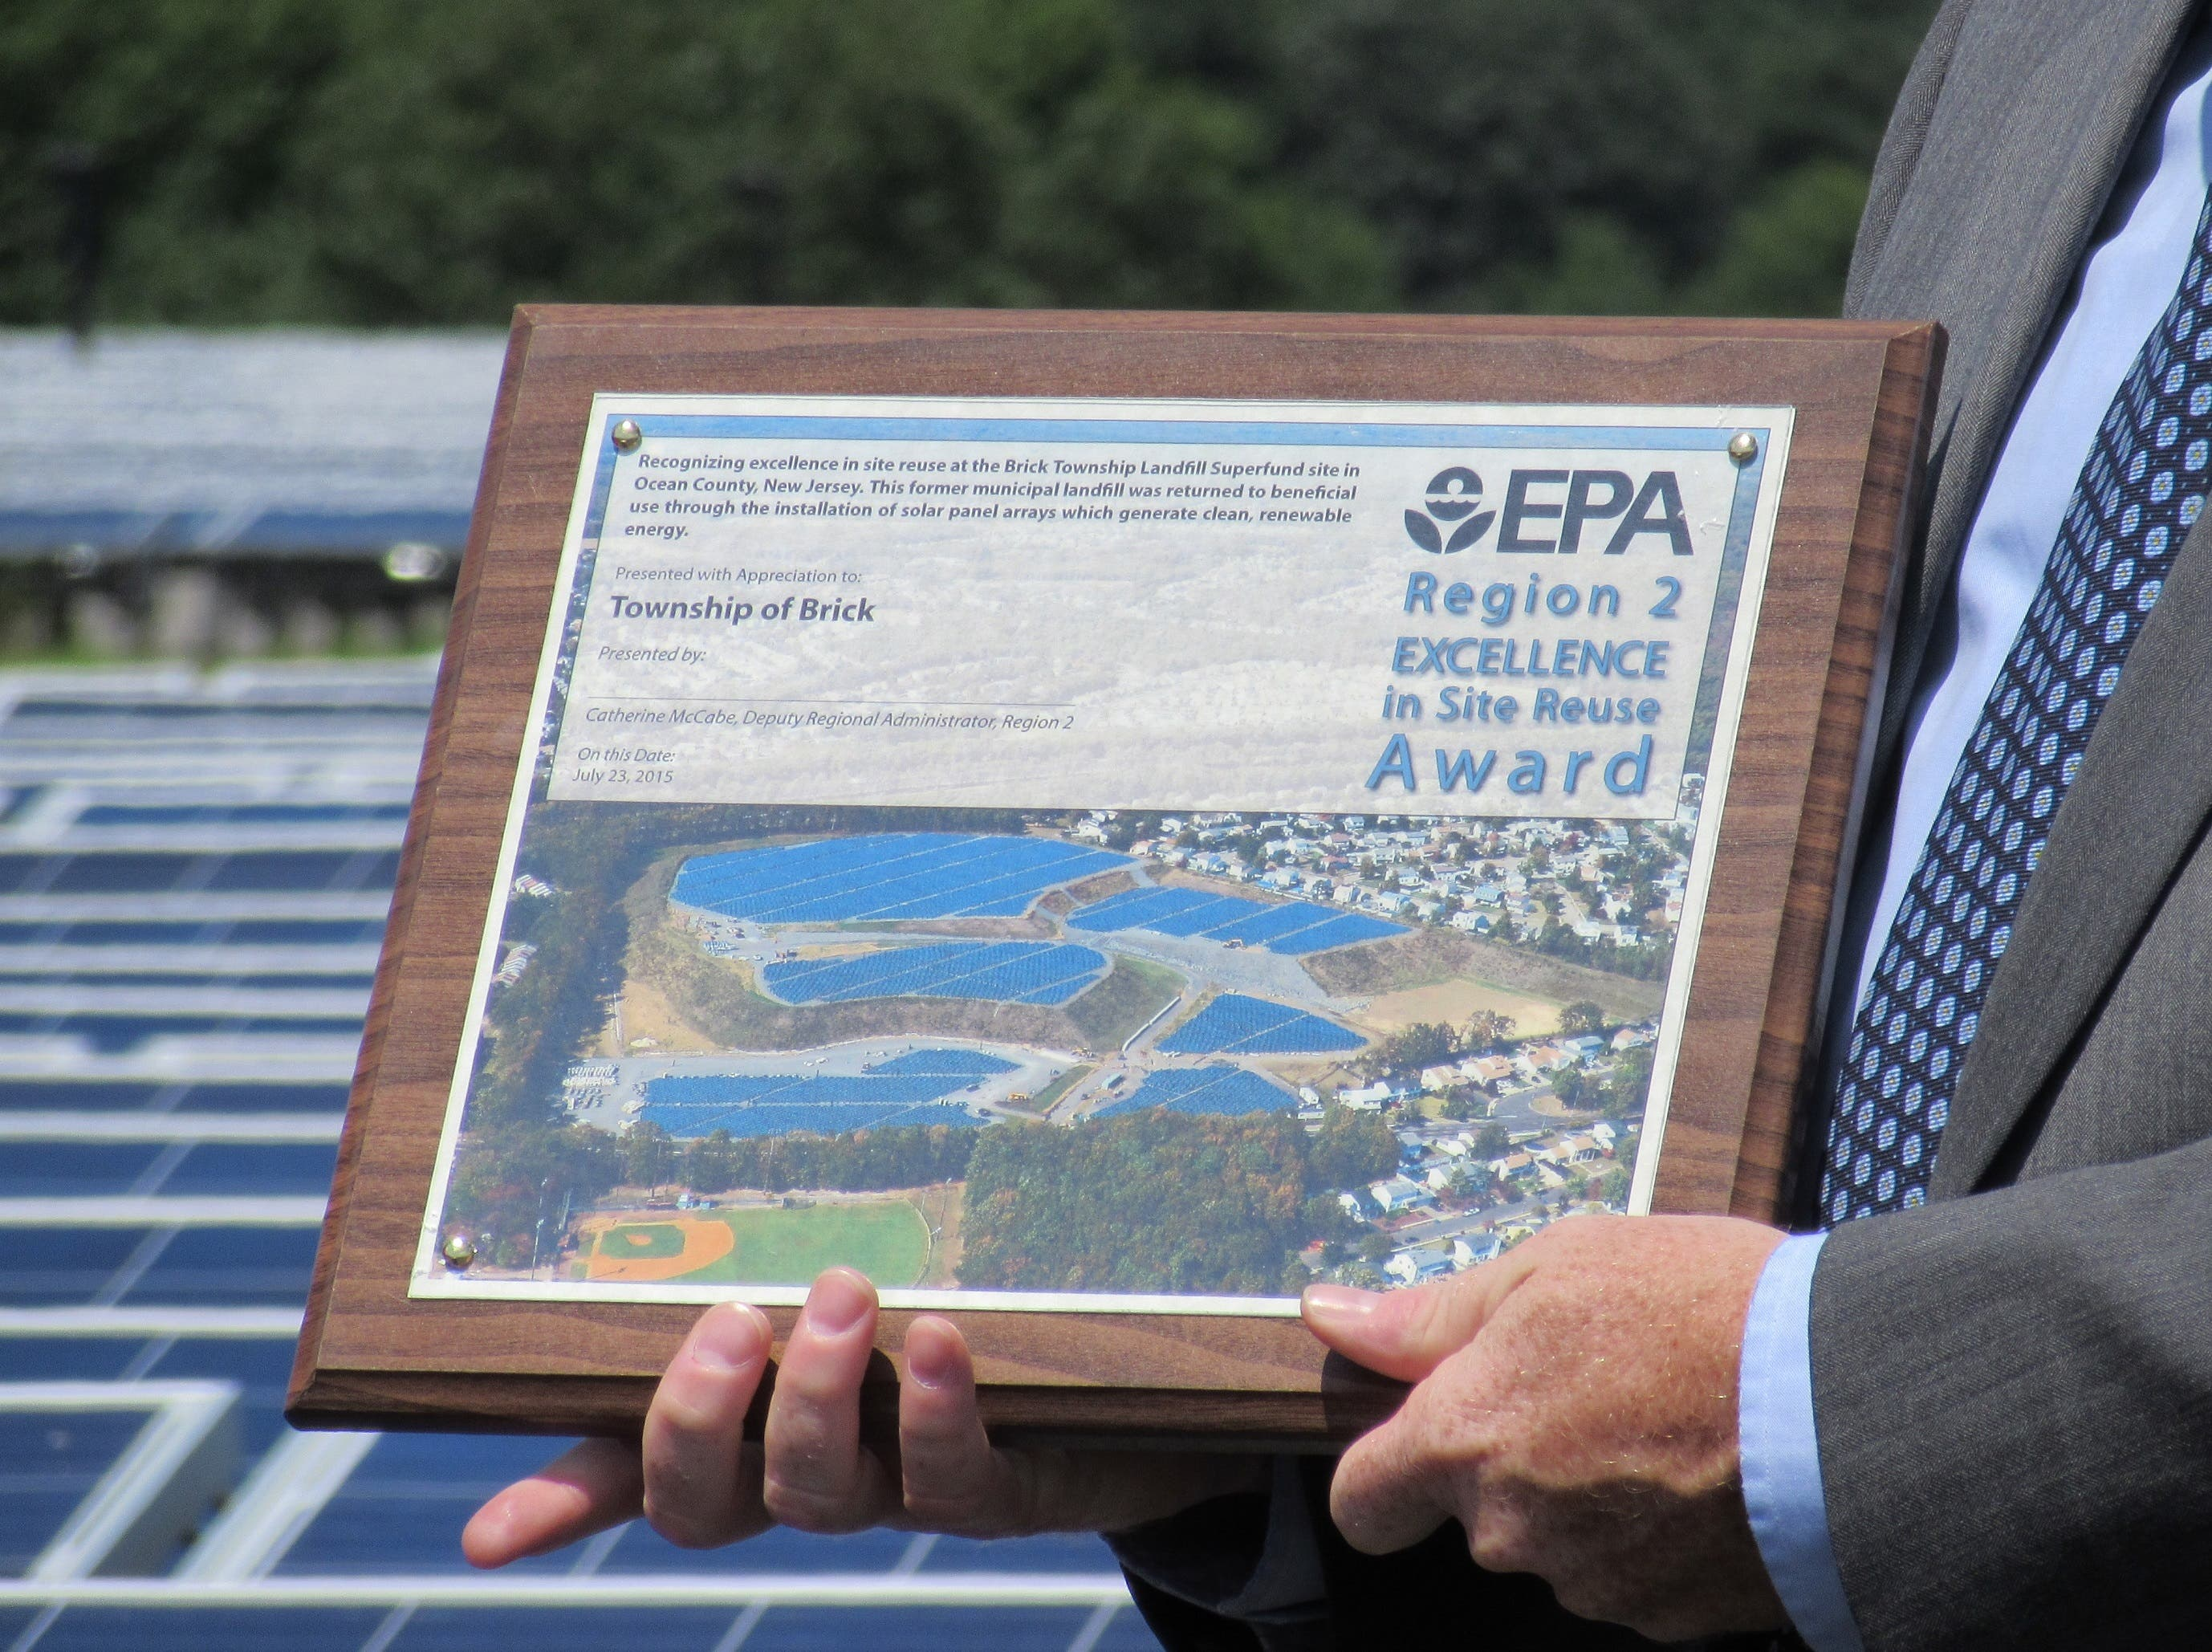 A Shining Example:' EPA Lauds Brick For Landfill-Turned-Solar Field